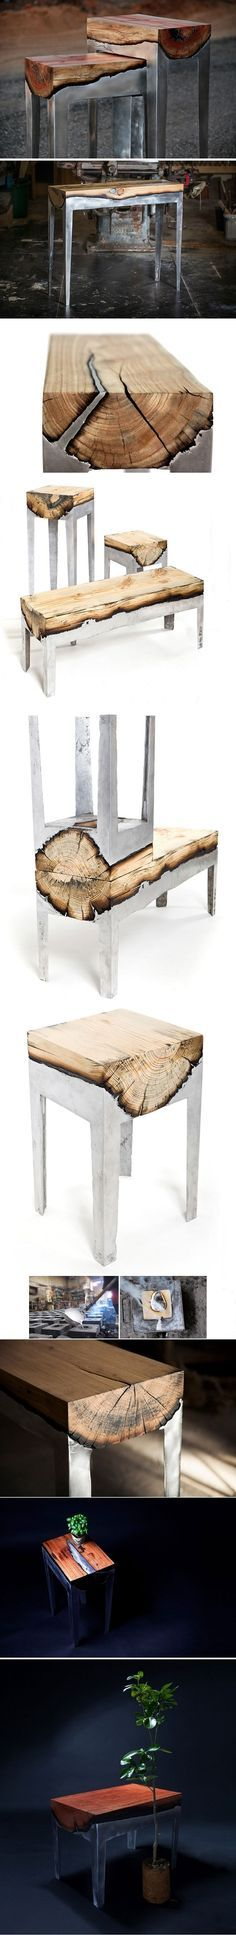 Wood And Metal Unite In Striking Furniture By Hilla Shamia | WoodworkerZ.com